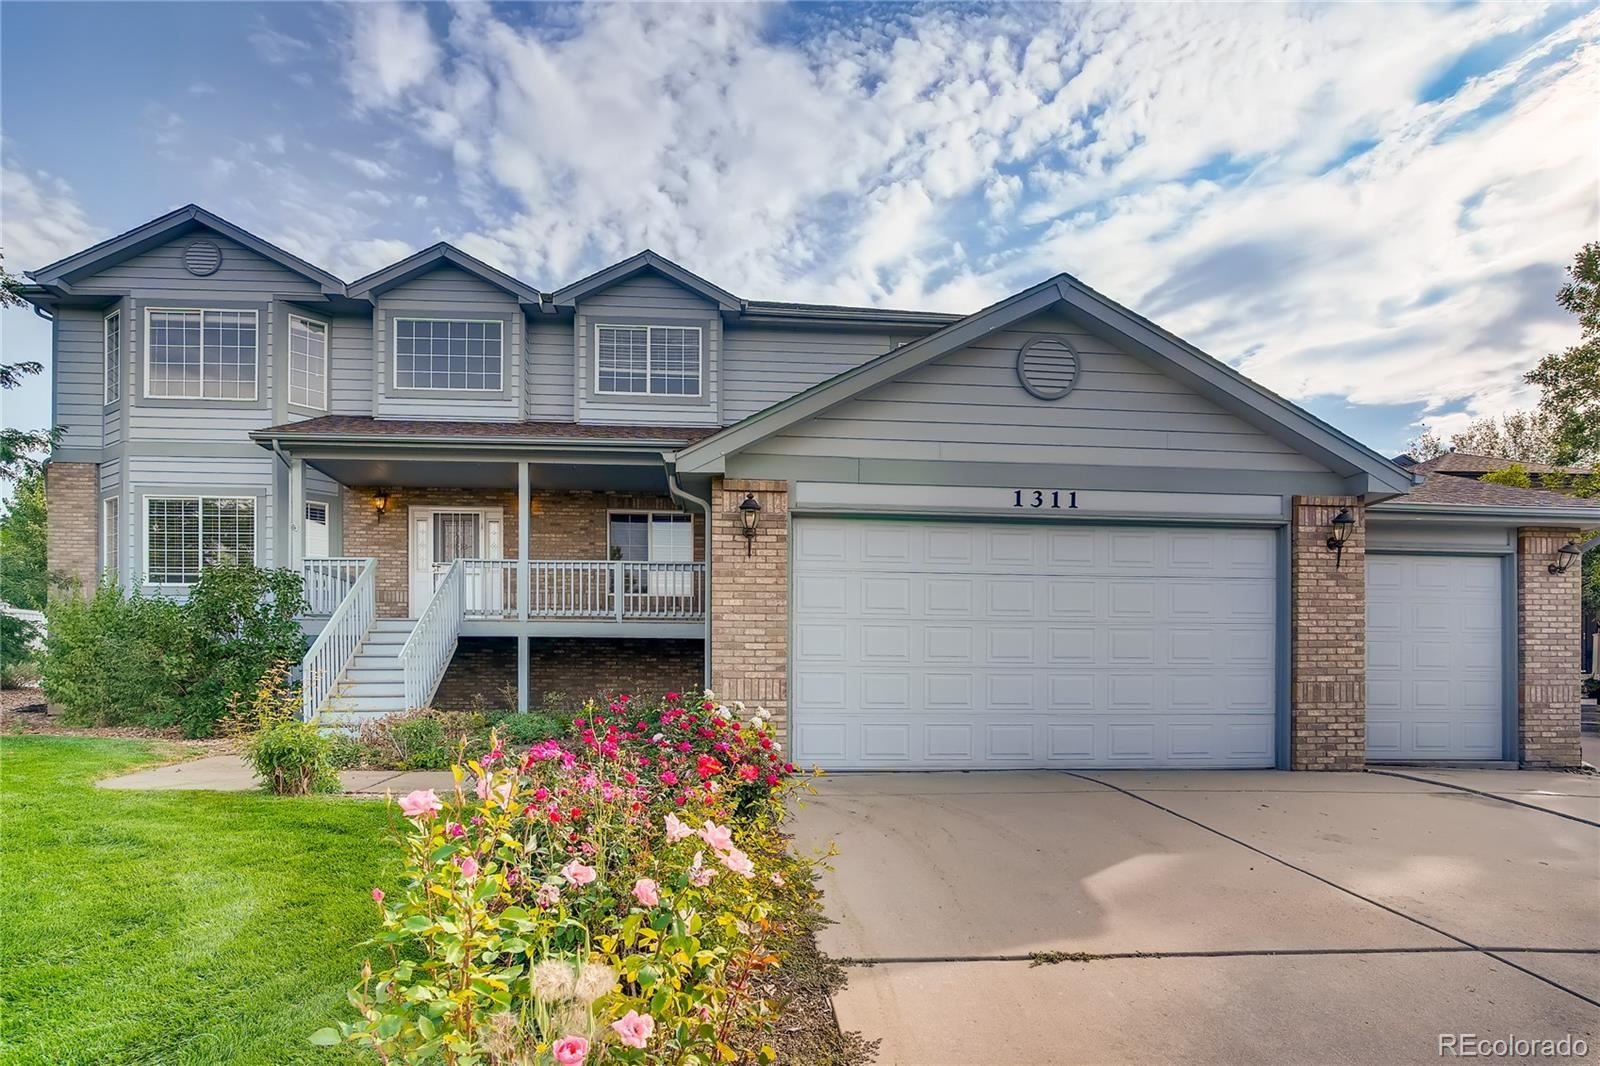 1311 Fletcher Drive, Erie, CO 80516 - #: 7511641